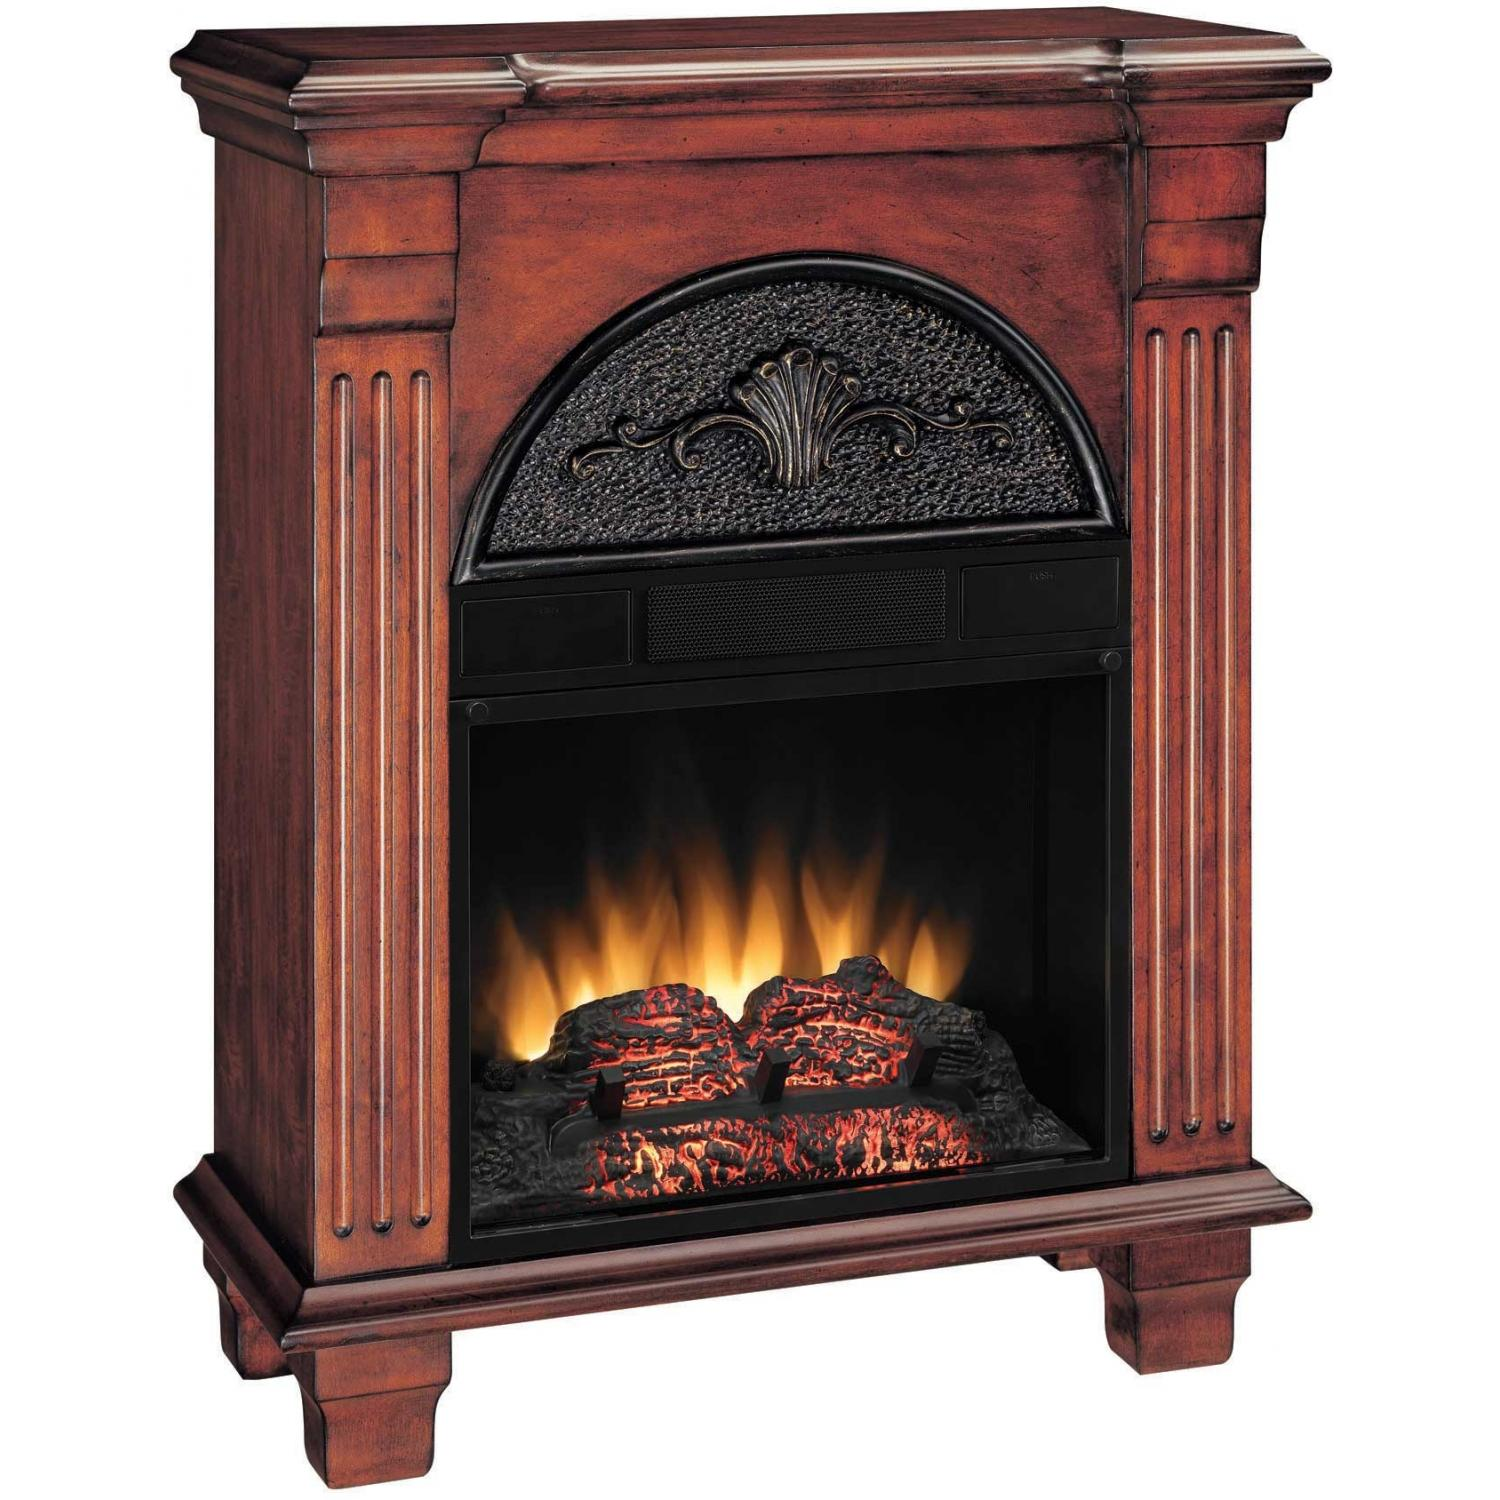 ClassicFlame 18PF338-M215 Regent Electric Fireplace - Antique Mahogany